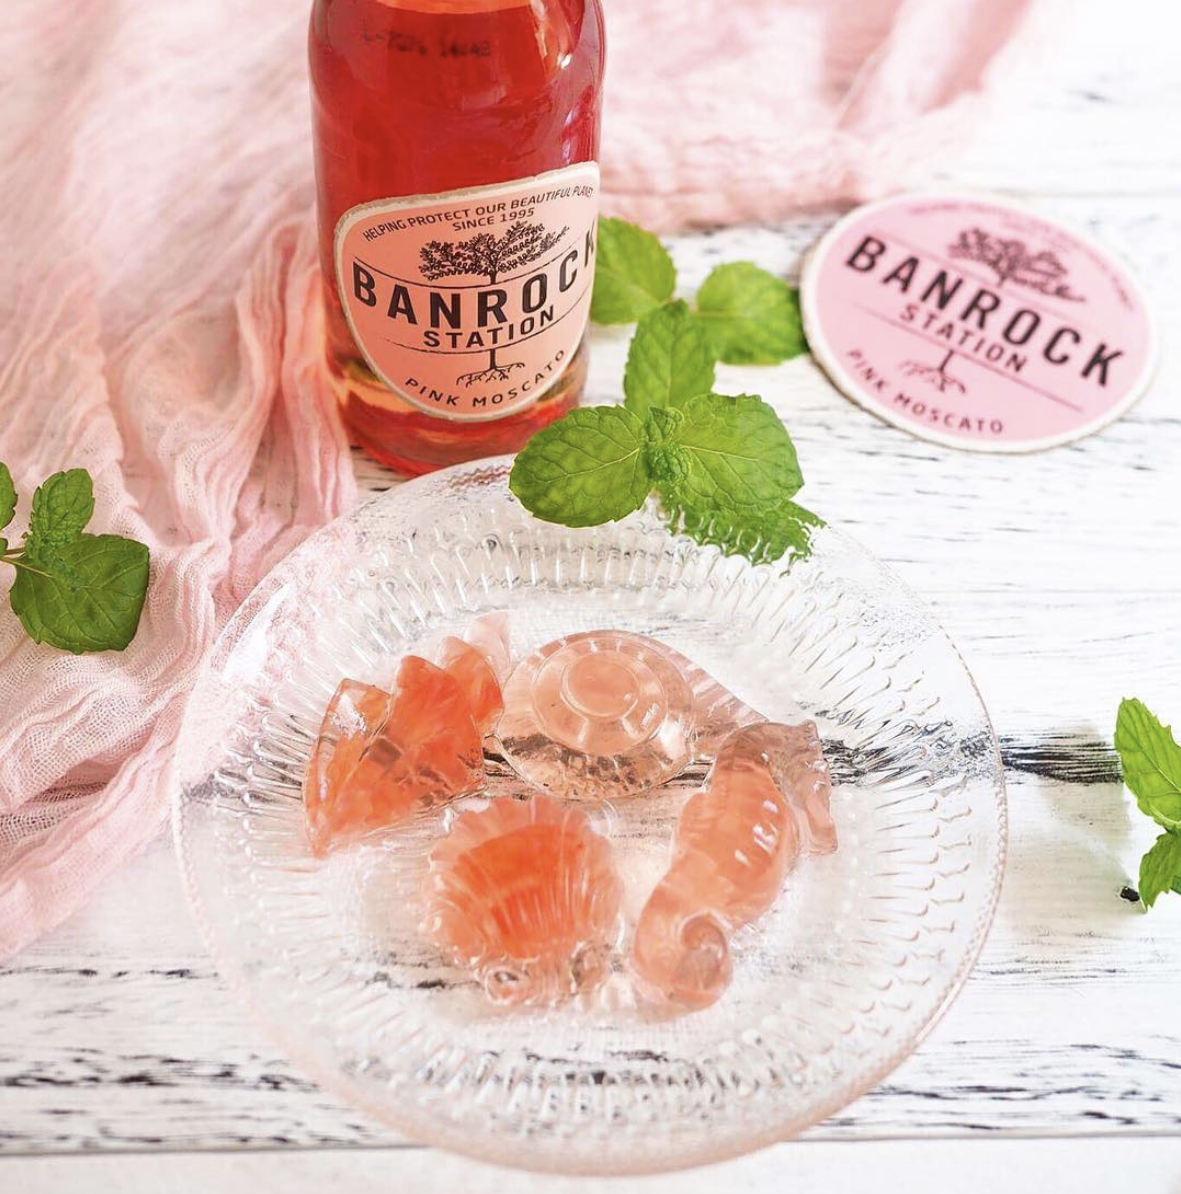 Pink moscato and grapefruit jellies on glass plate